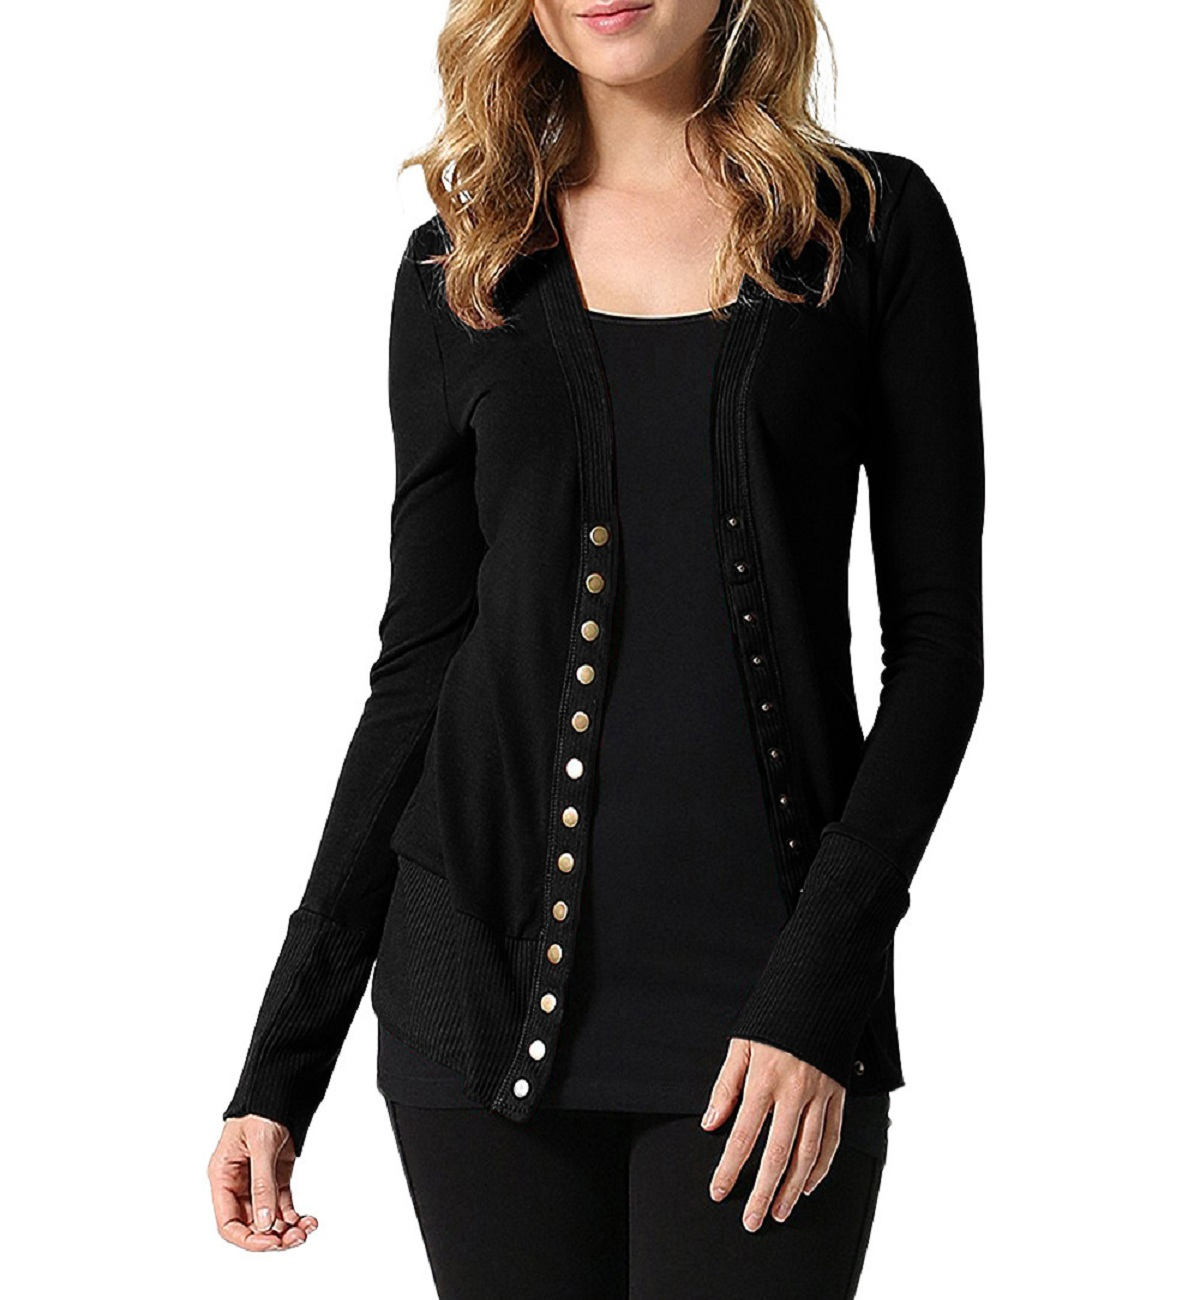 Plus Size Autumn Solid Knitted Cardigan Sweater Women Casual Long Sleeve Straight Bottom Wearing Button Sweater Stretch Cardigan